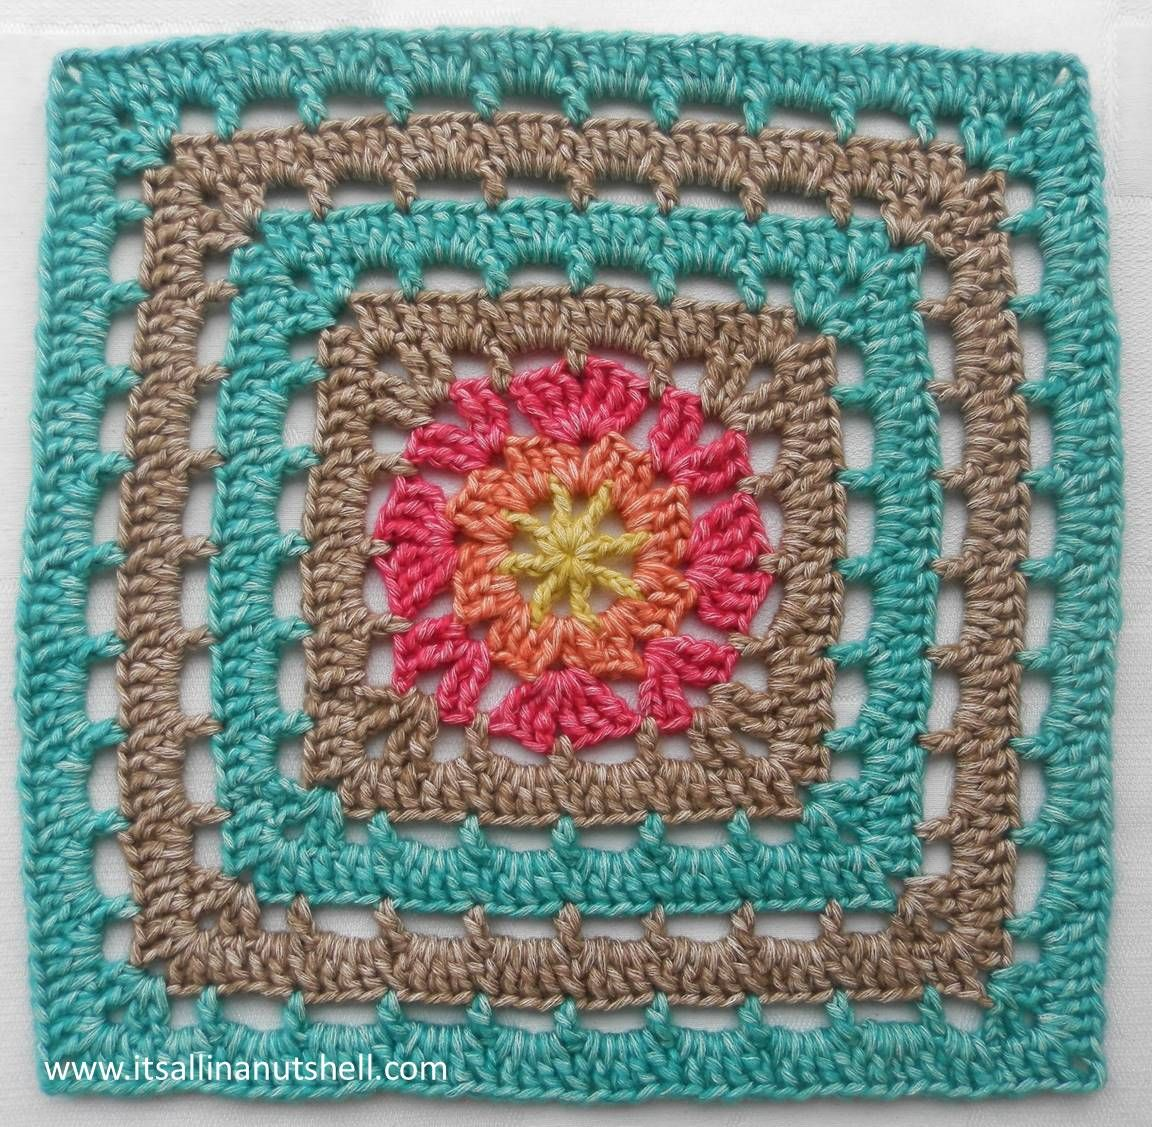 Vincent 12 afghan square free crochet pattern by esther vincent 12 afghan square free crochet pattern by esther dijkstra at its all bankloansurffo Image collections